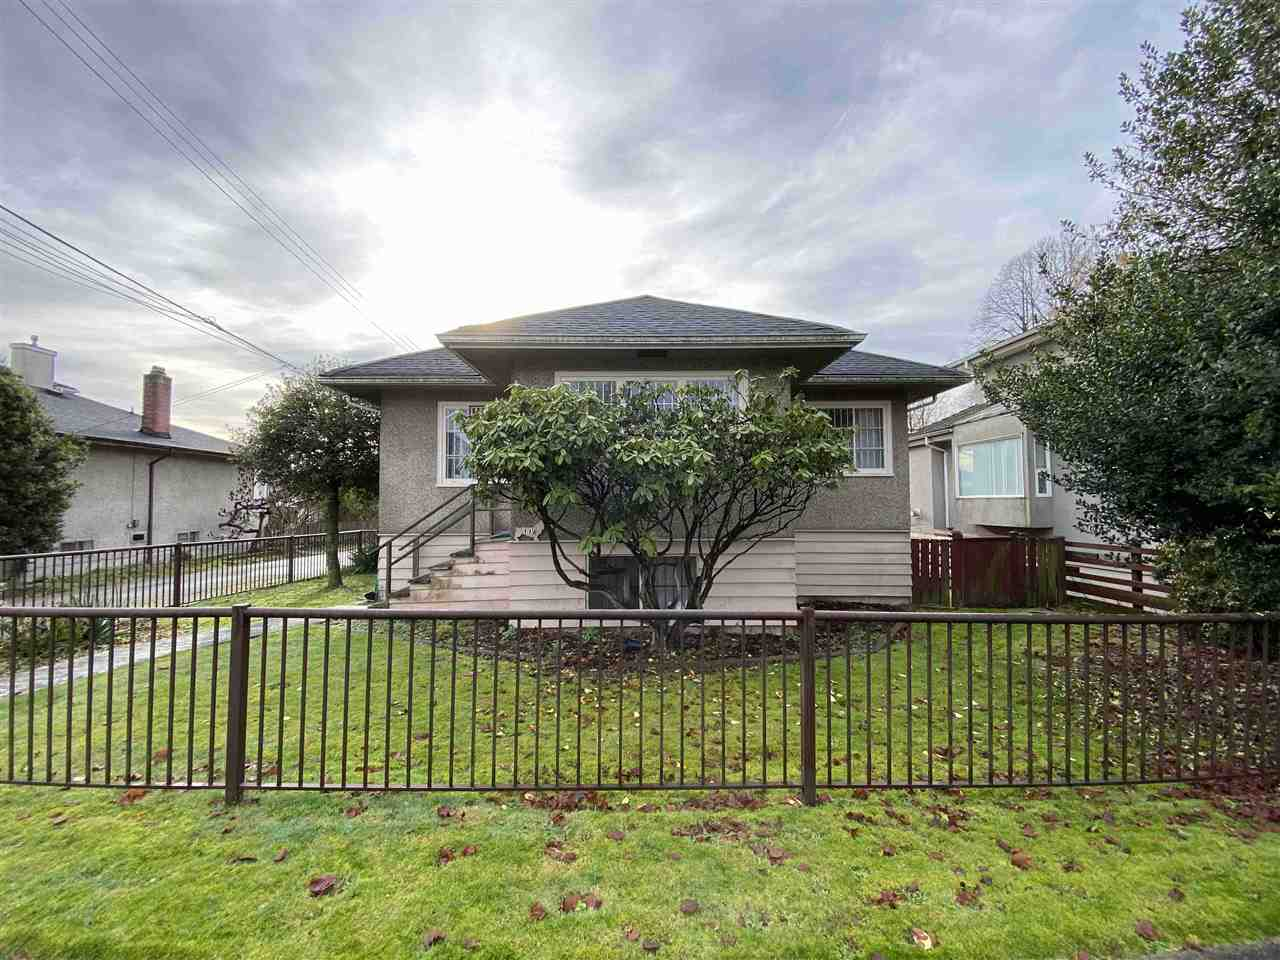 116 E 53RD AVENUE - South Vancouver House/Single Family for sale, 3 Bedrooms (R2533133) - #1